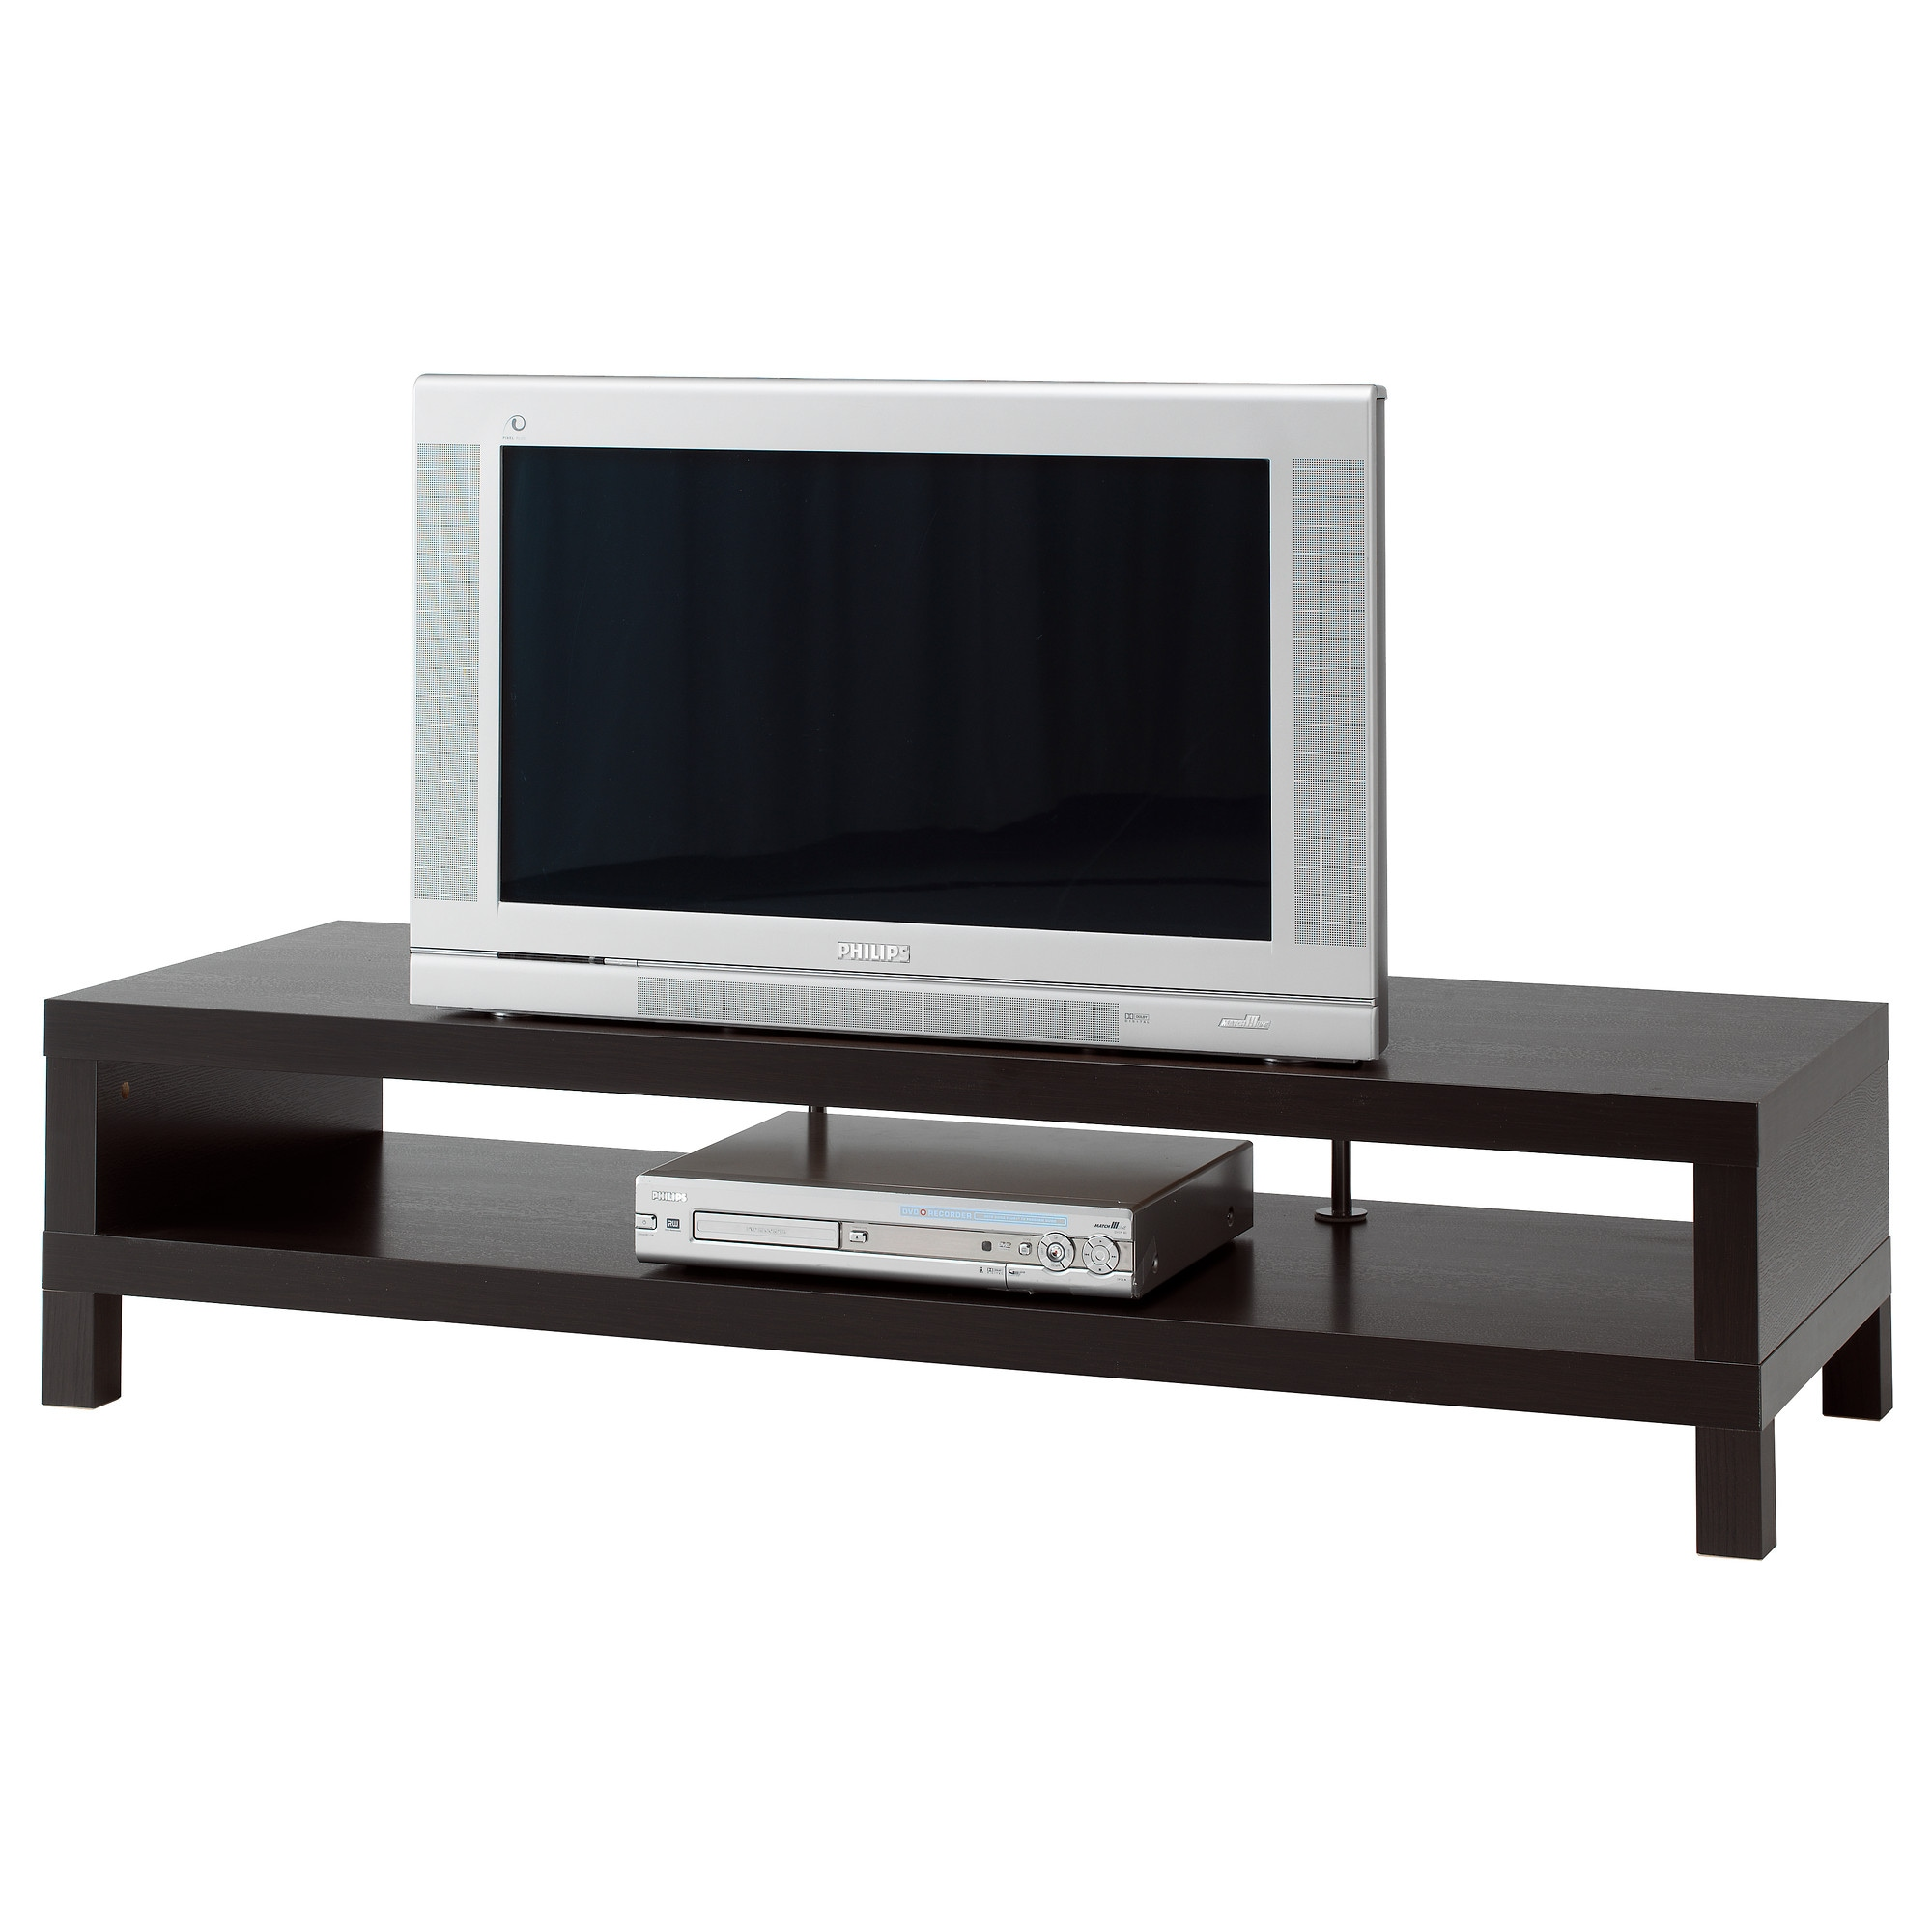 Lack Tv Bench Ikea # Meuble Tv Lack